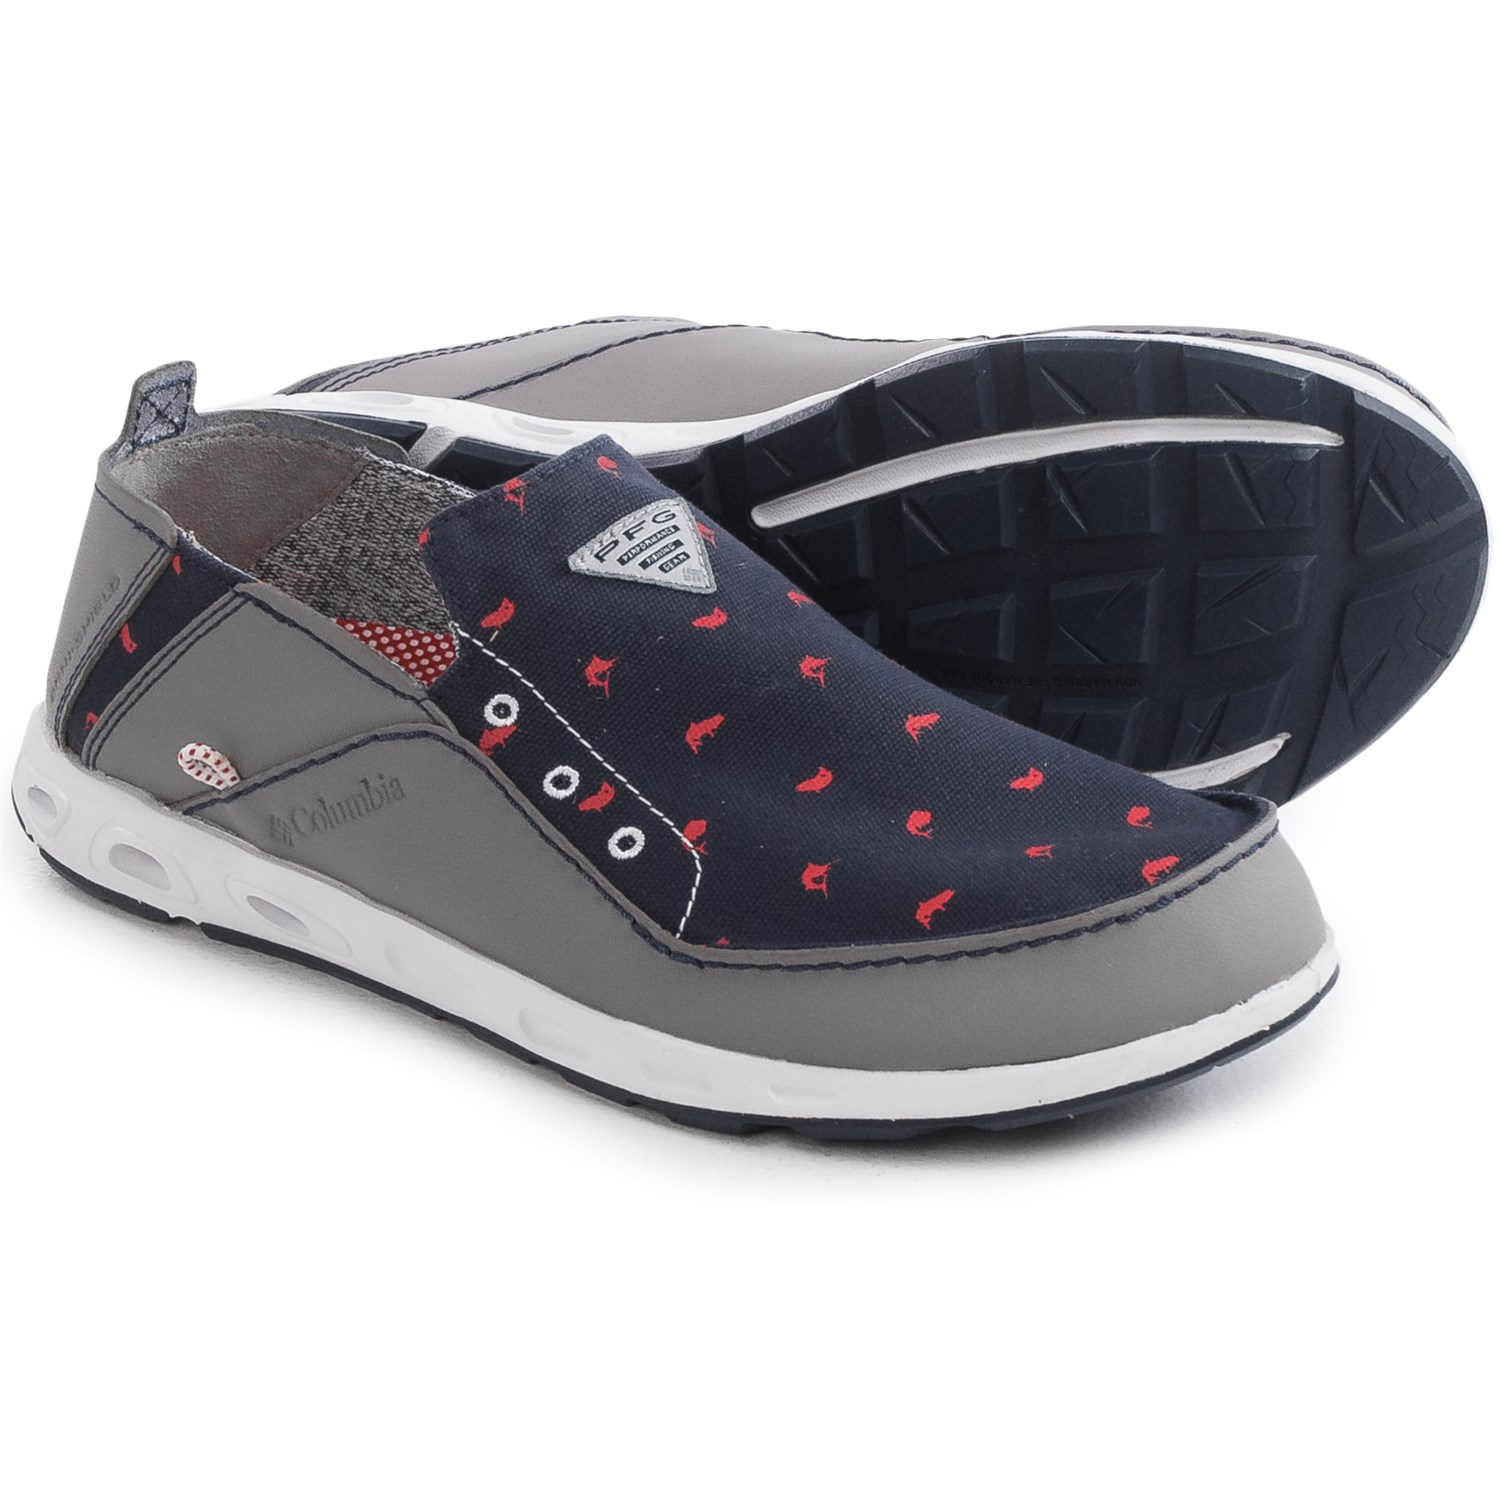 columbia s bahama casual shoes taconic golf club